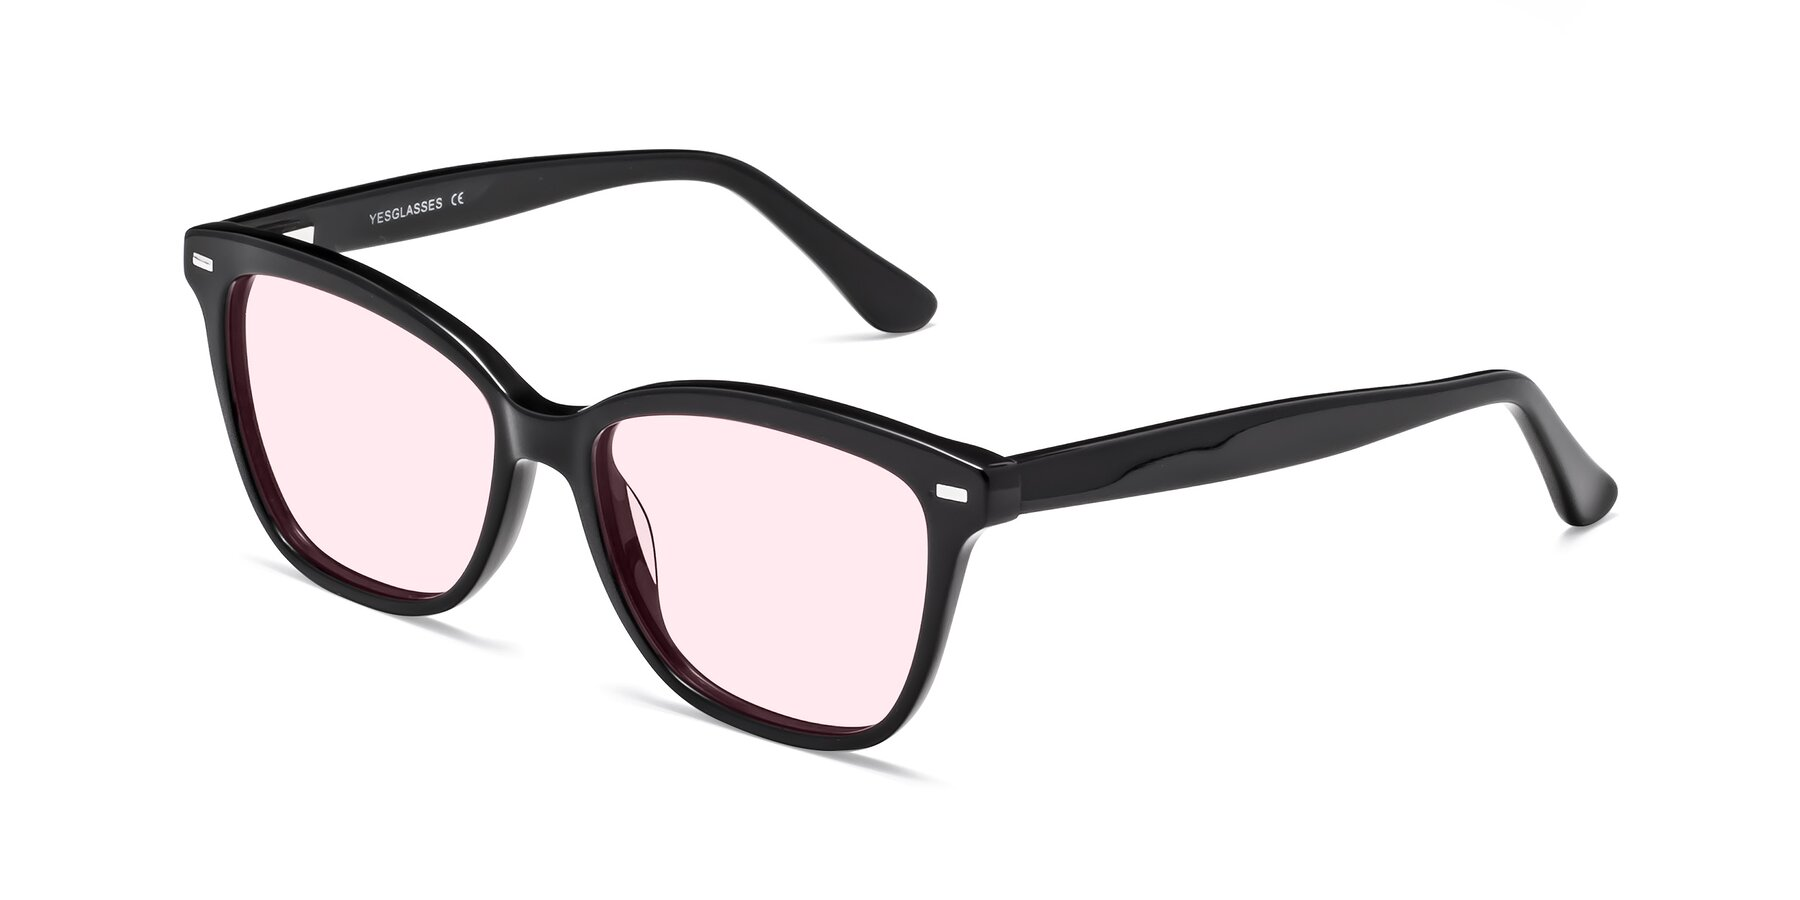 Angle of 17485 in Black with Light Pink Tinted Lenses